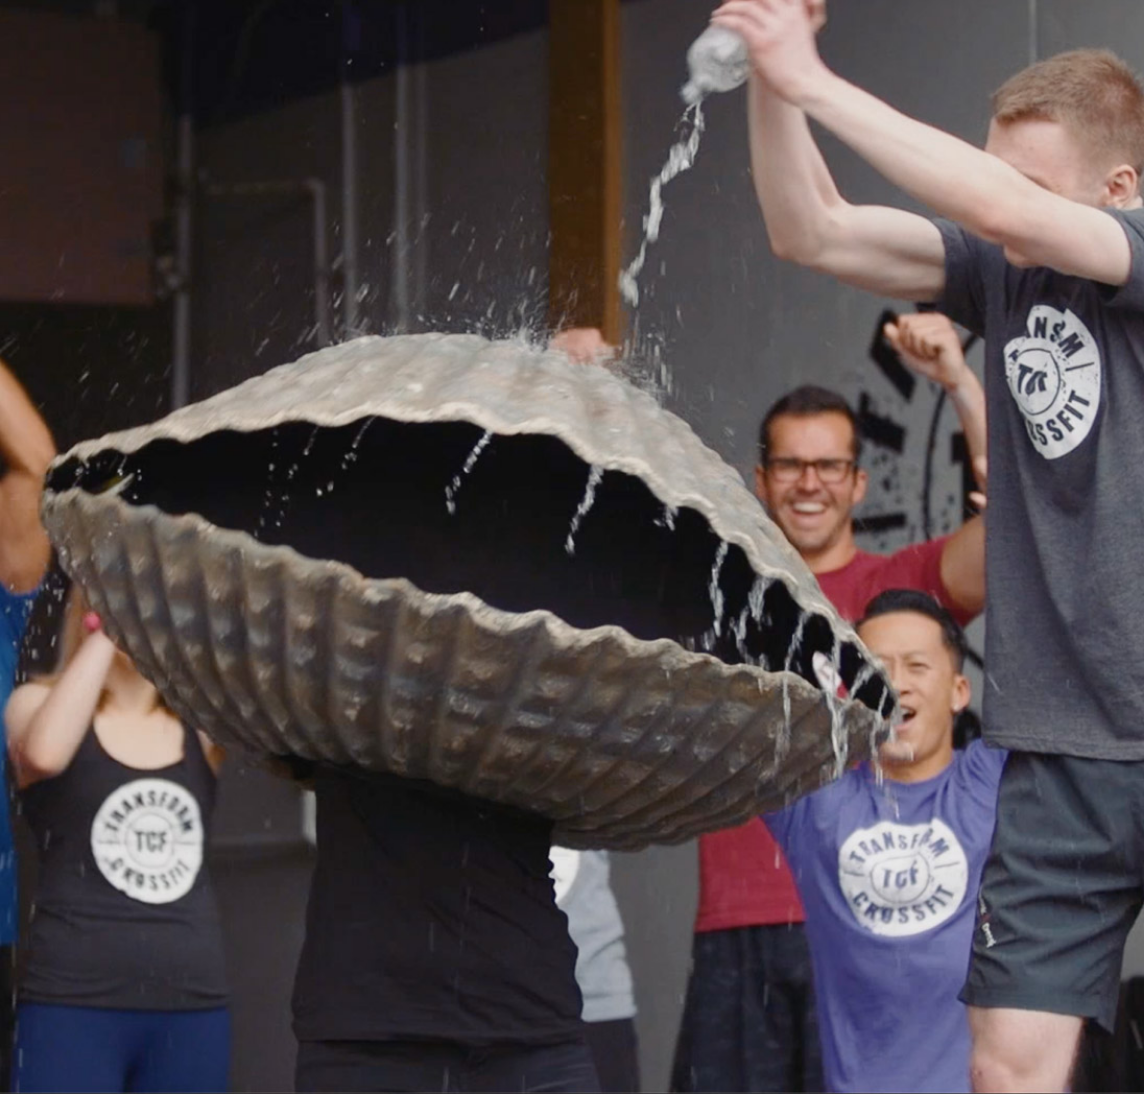 Person in a clam costume being cheered on by other members in a fitness class